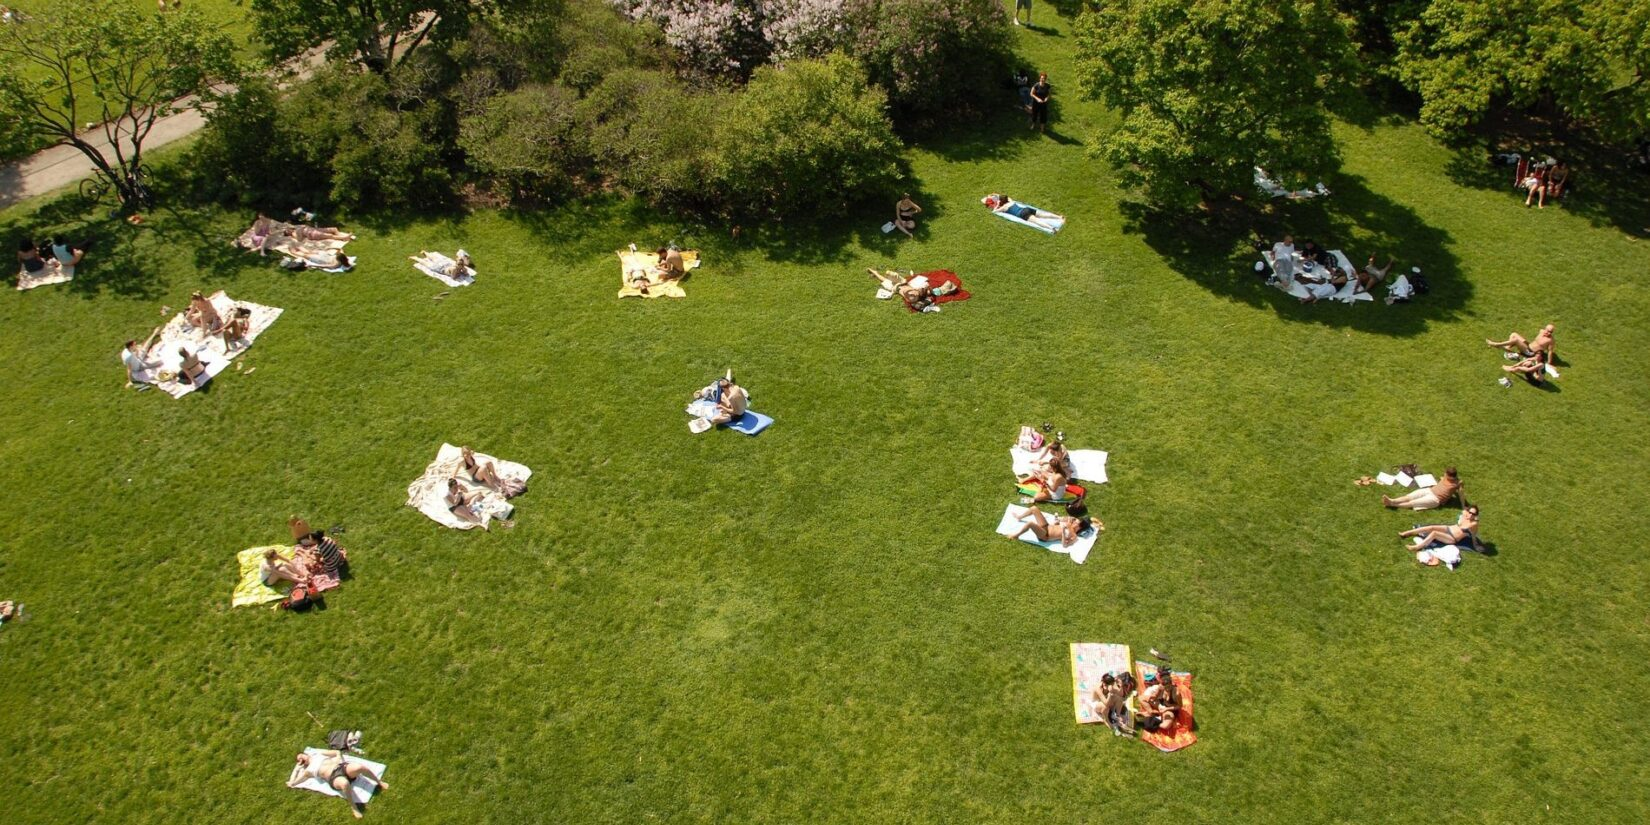 Sunbathers dot the landscape in this aerial shot of a Central Park lawn